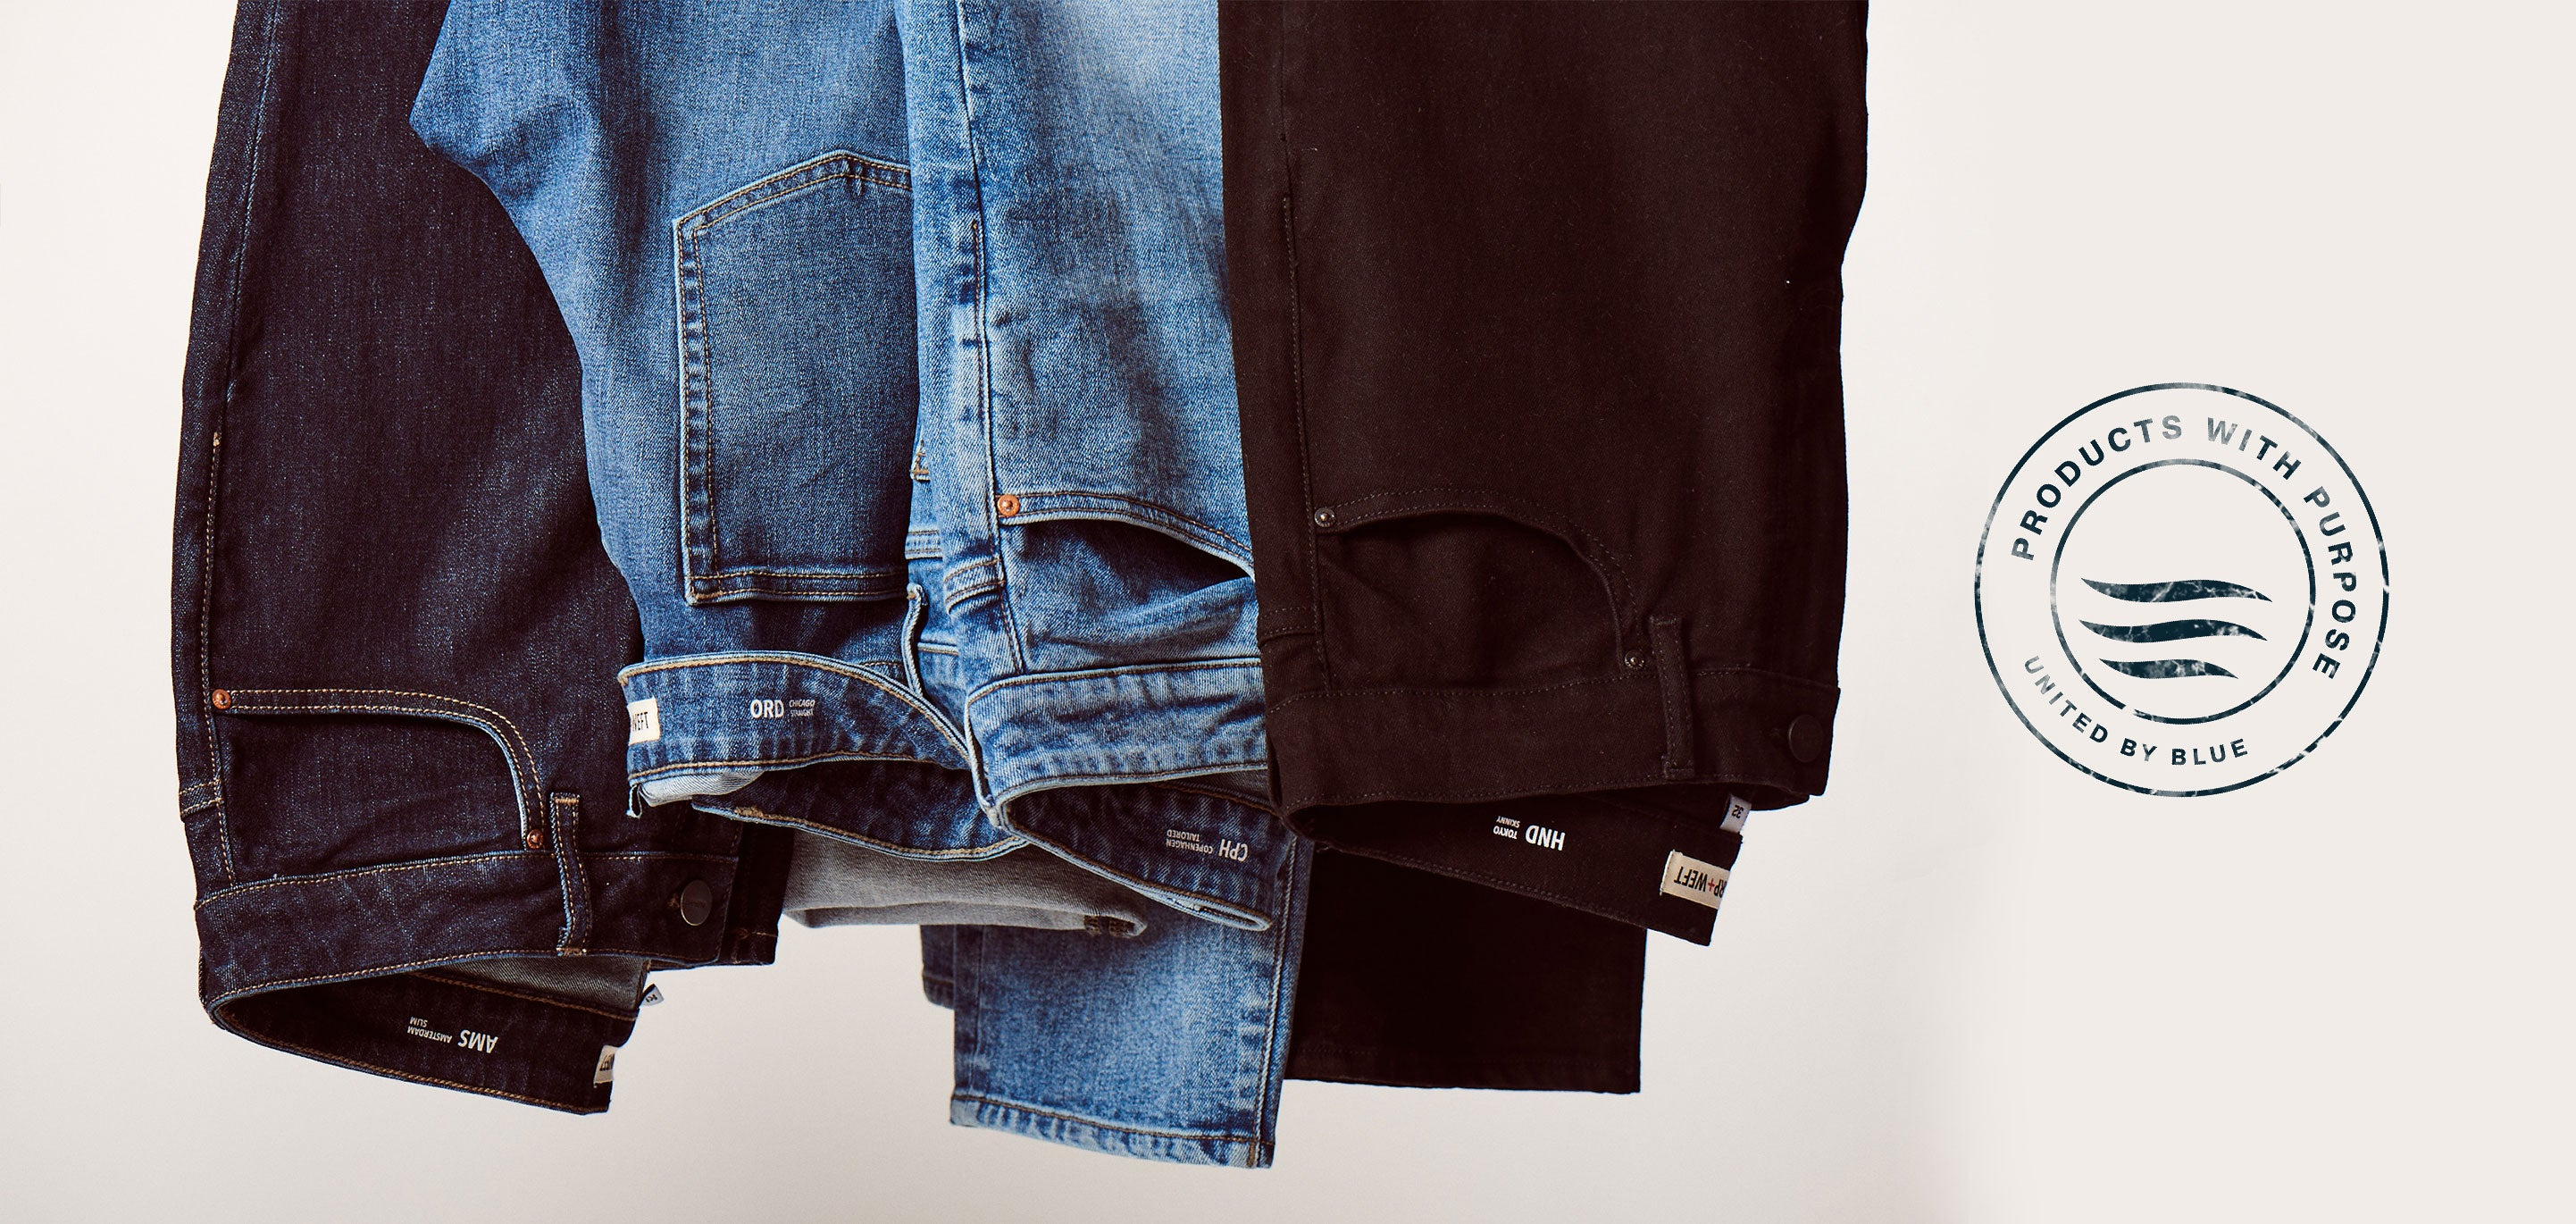 Products with purpose: what is clean denim anyway?